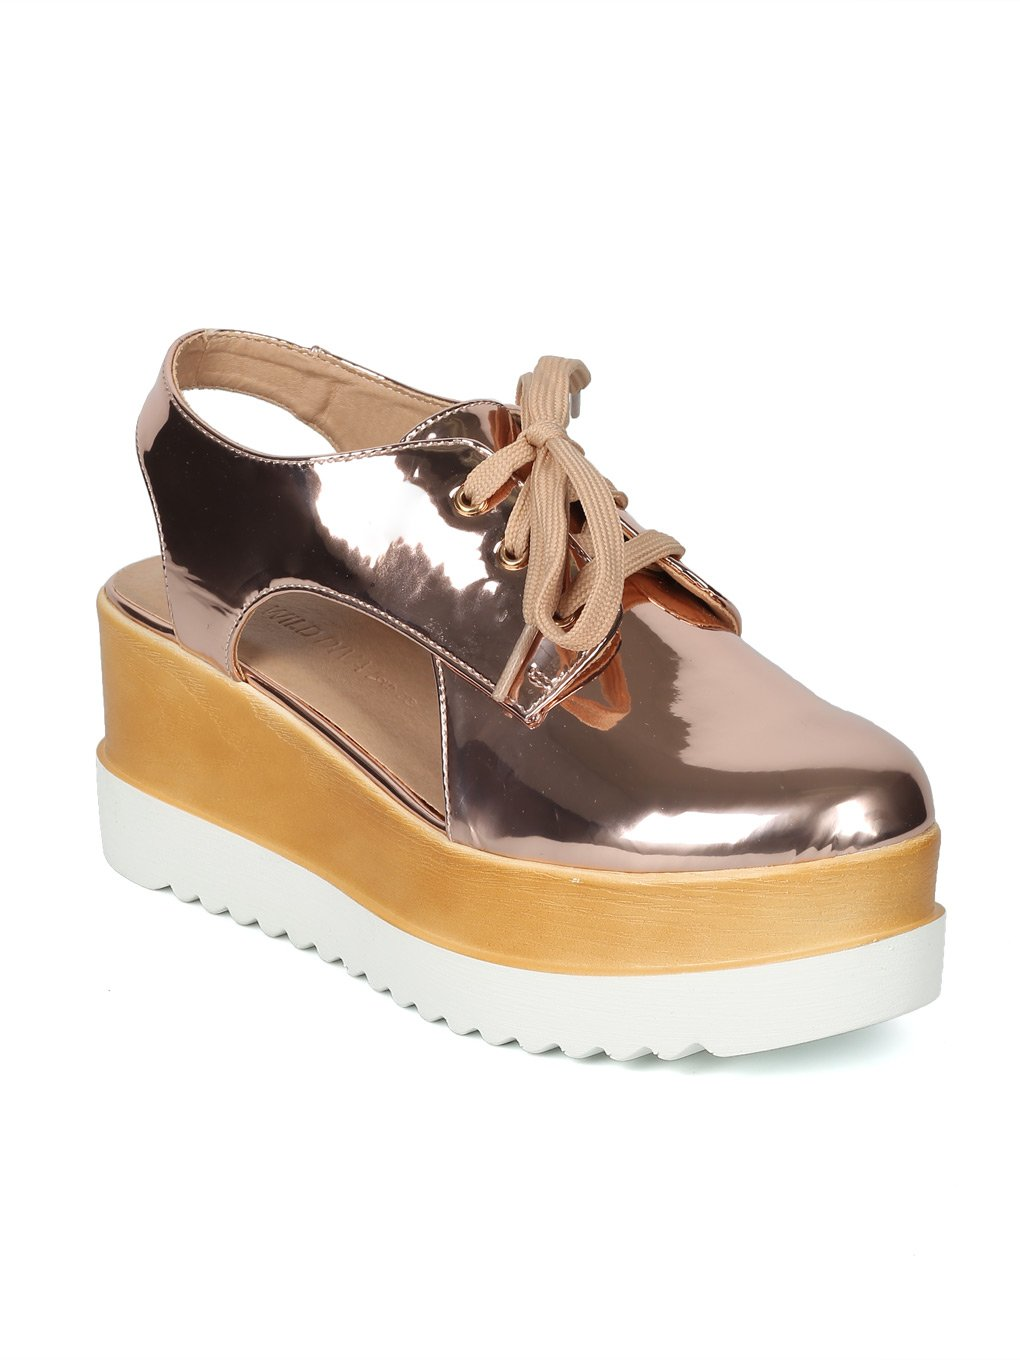 Women Cut Out Platform Double Stacked Creeper Slingback Oxford HH70 - Rose Gold Metallic (Size: 7.0)